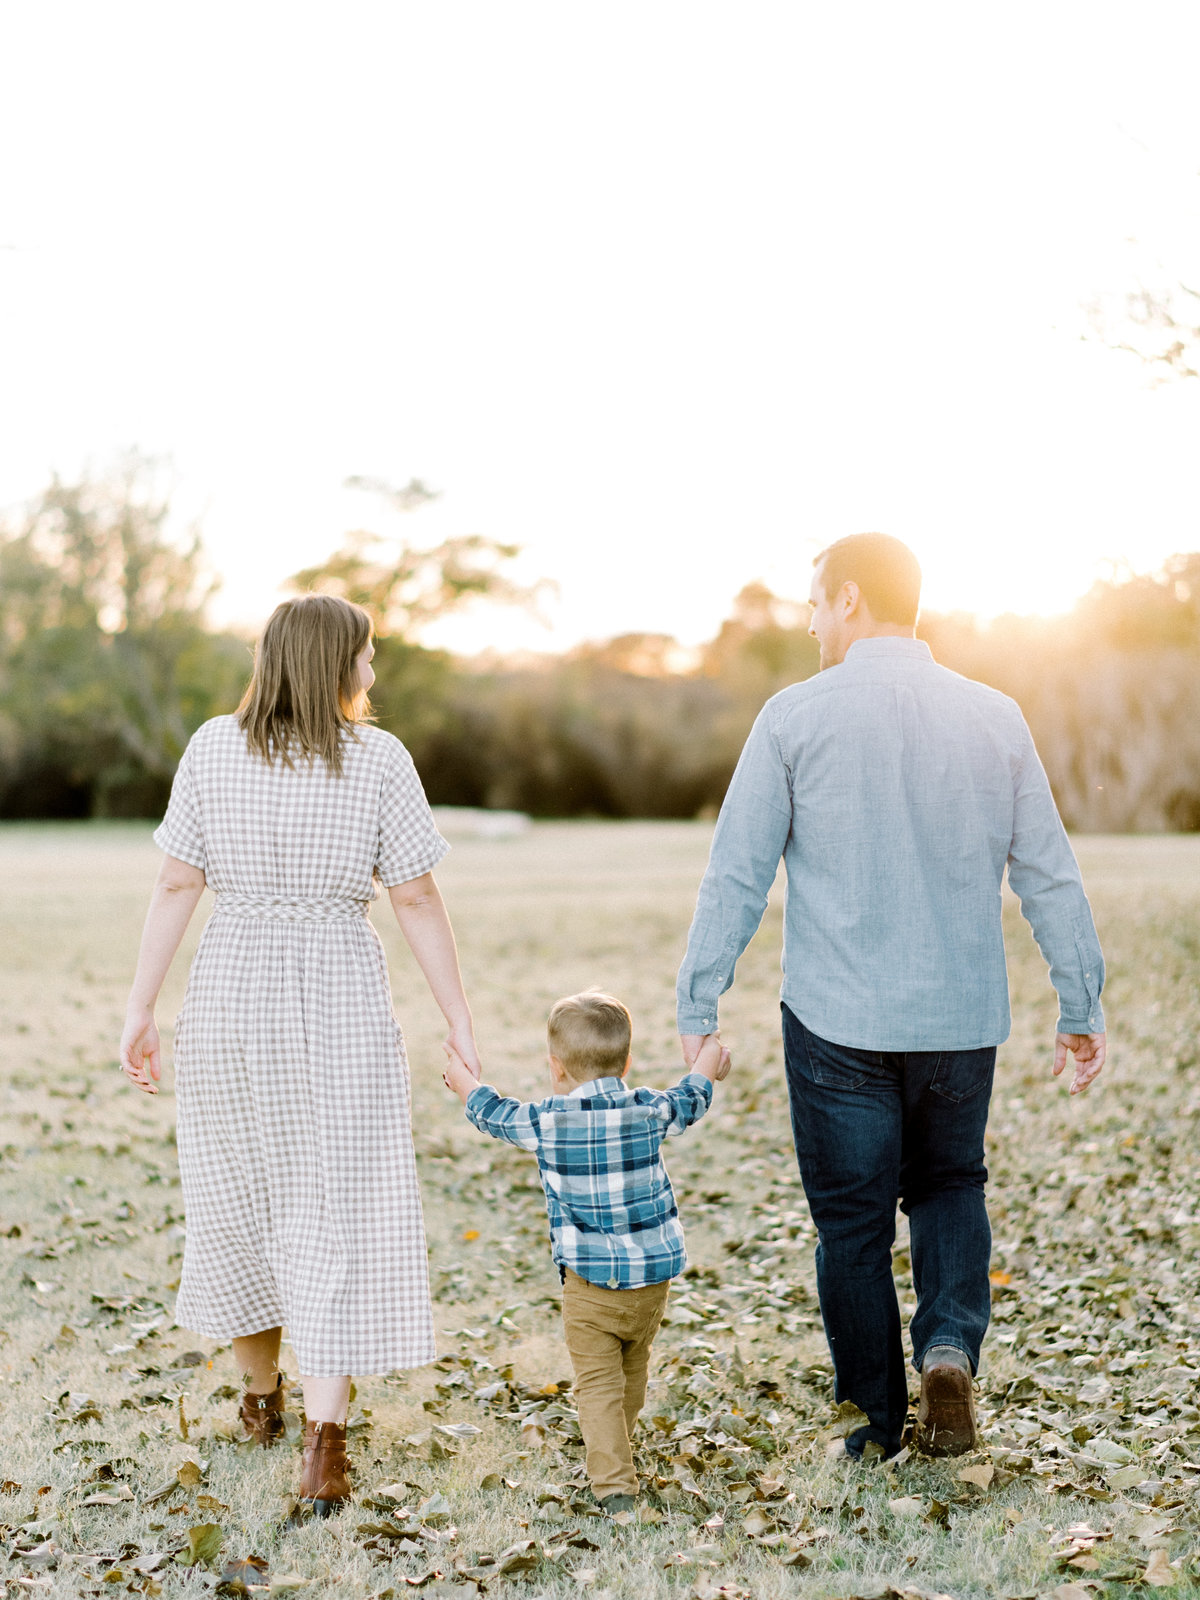 ReevesFamily-MelanieJulianPhotography-Fall2018-52